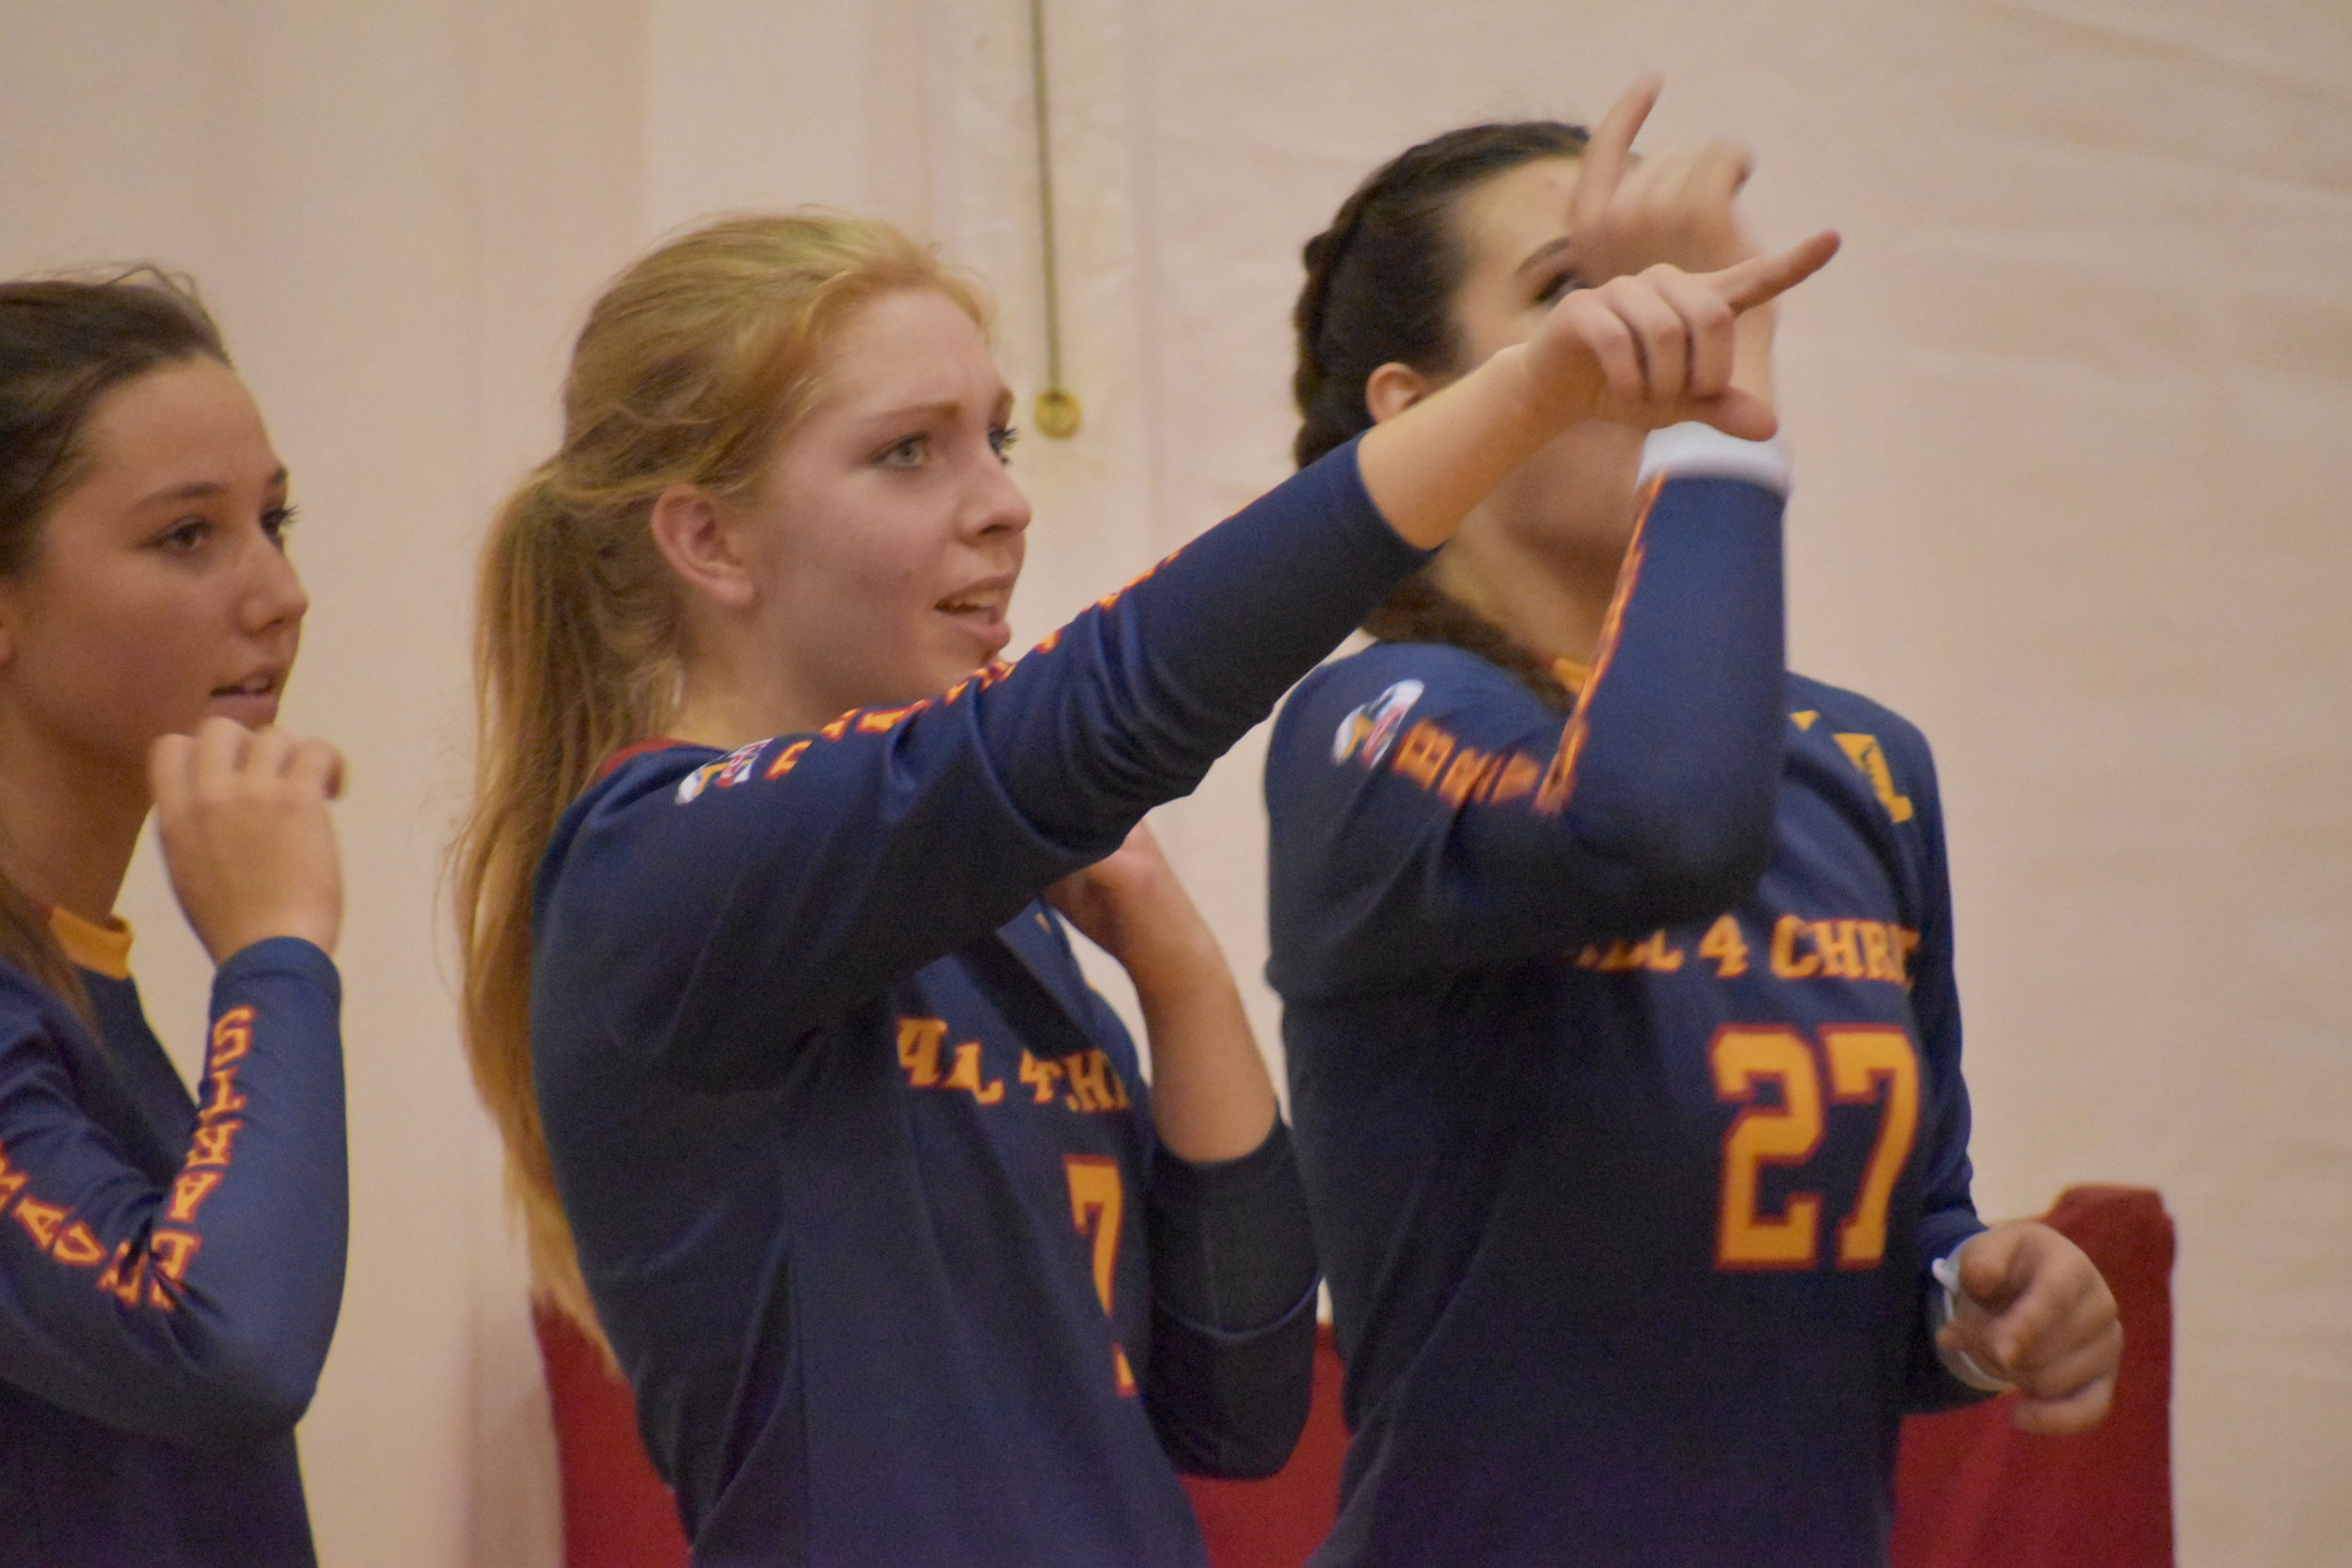 Blue Red Yellow Black volleyball uniforms jersey shirts, shorts